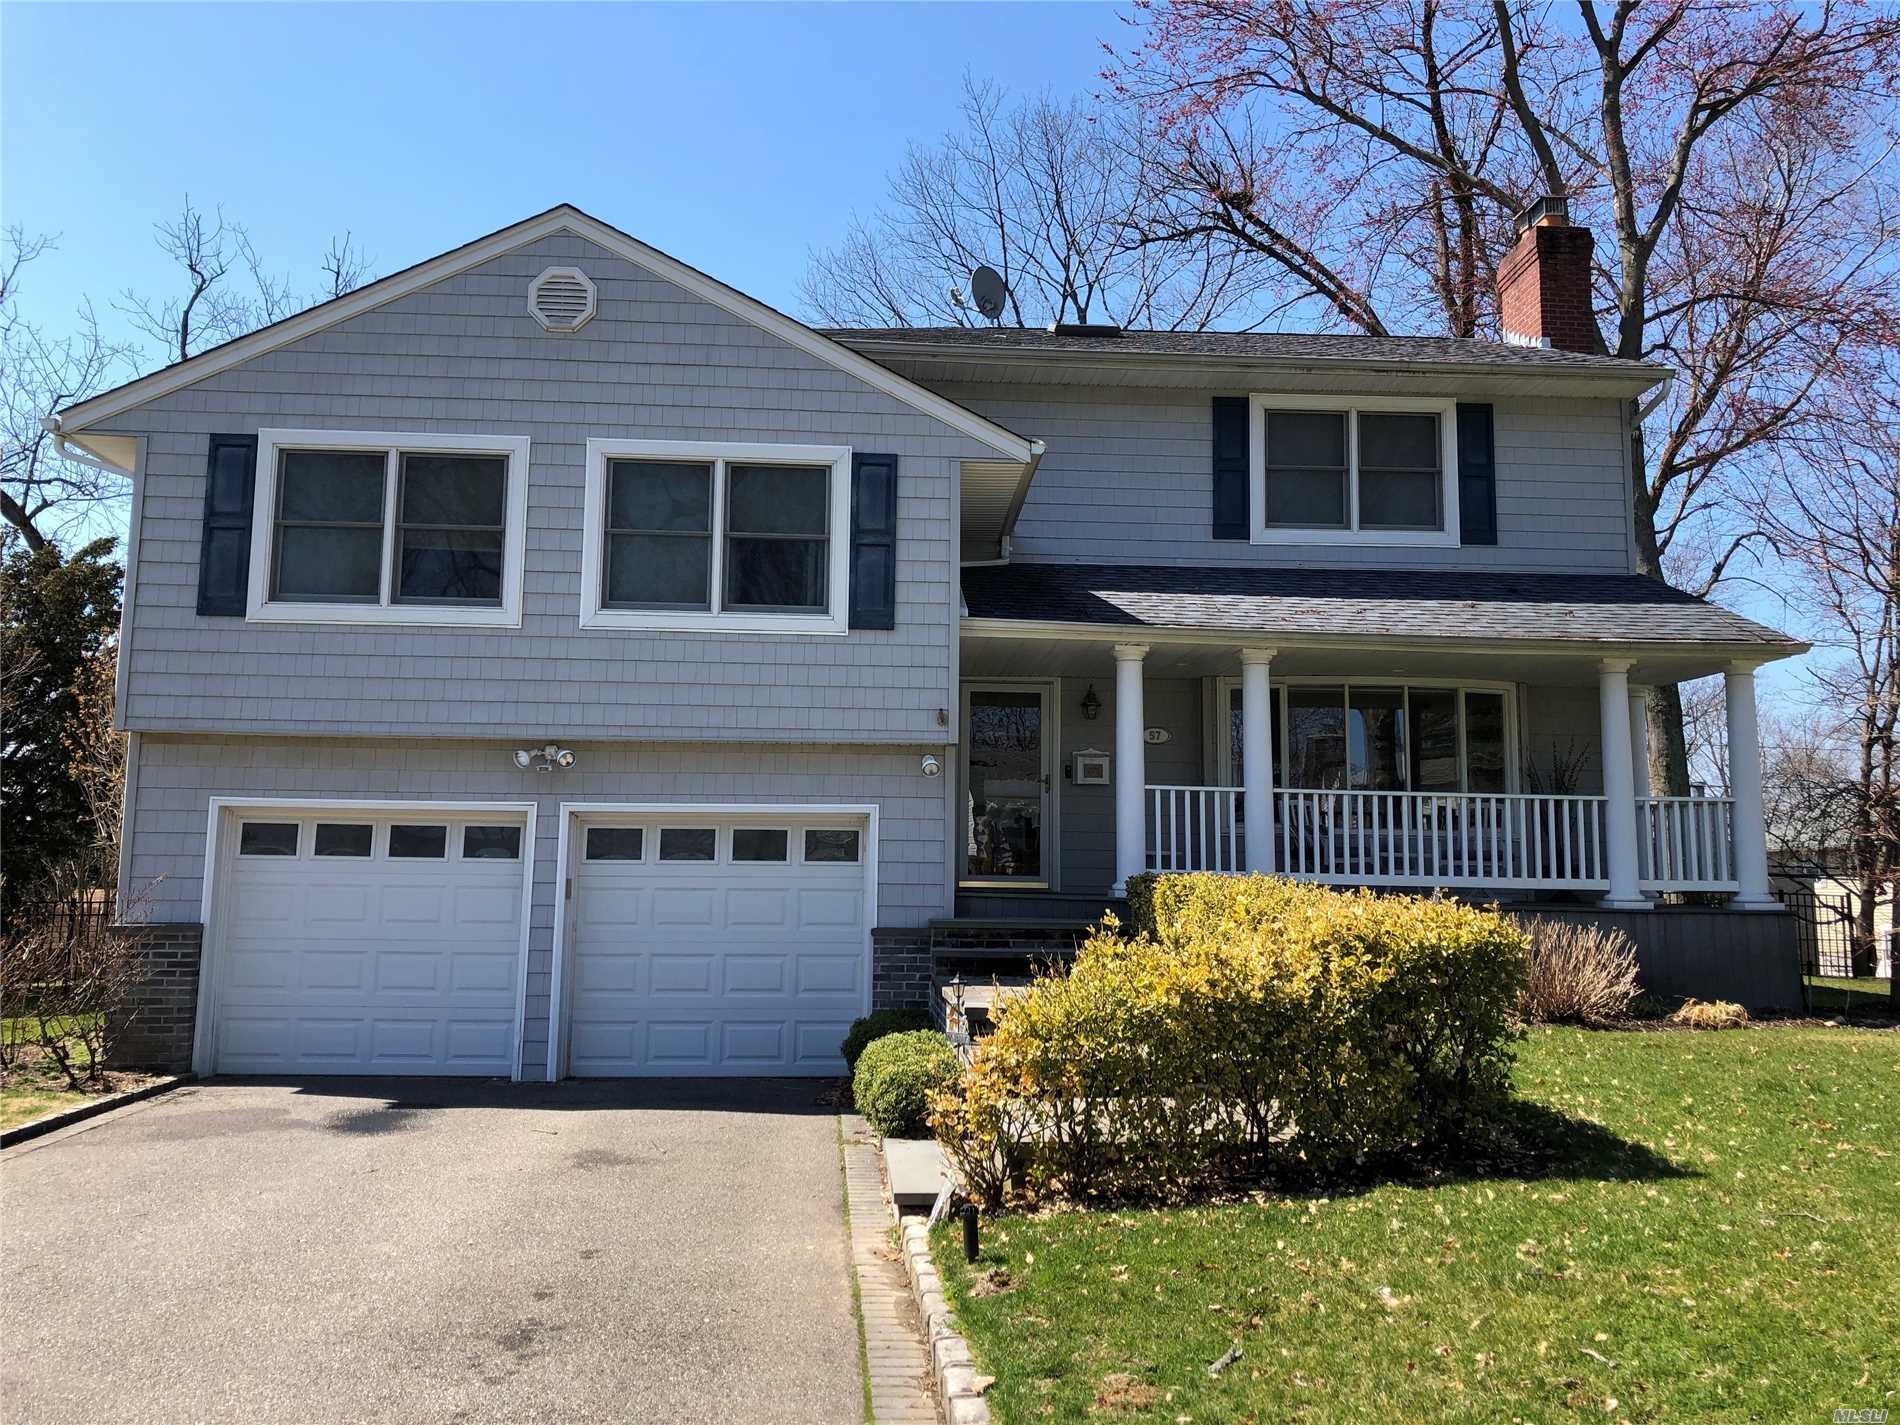 Large expanded split on over one quarter acre. Rocking chair front porch, Living room w/.stone fpl, DR, EIK, den plus playroom basement with laundry.Upper level offers huge Master suite with bath, walk in closet and deck. Attached 2 car garage, CAC, Gas heat. Beautifully landscaped private property. Short distance to town, train and schools.